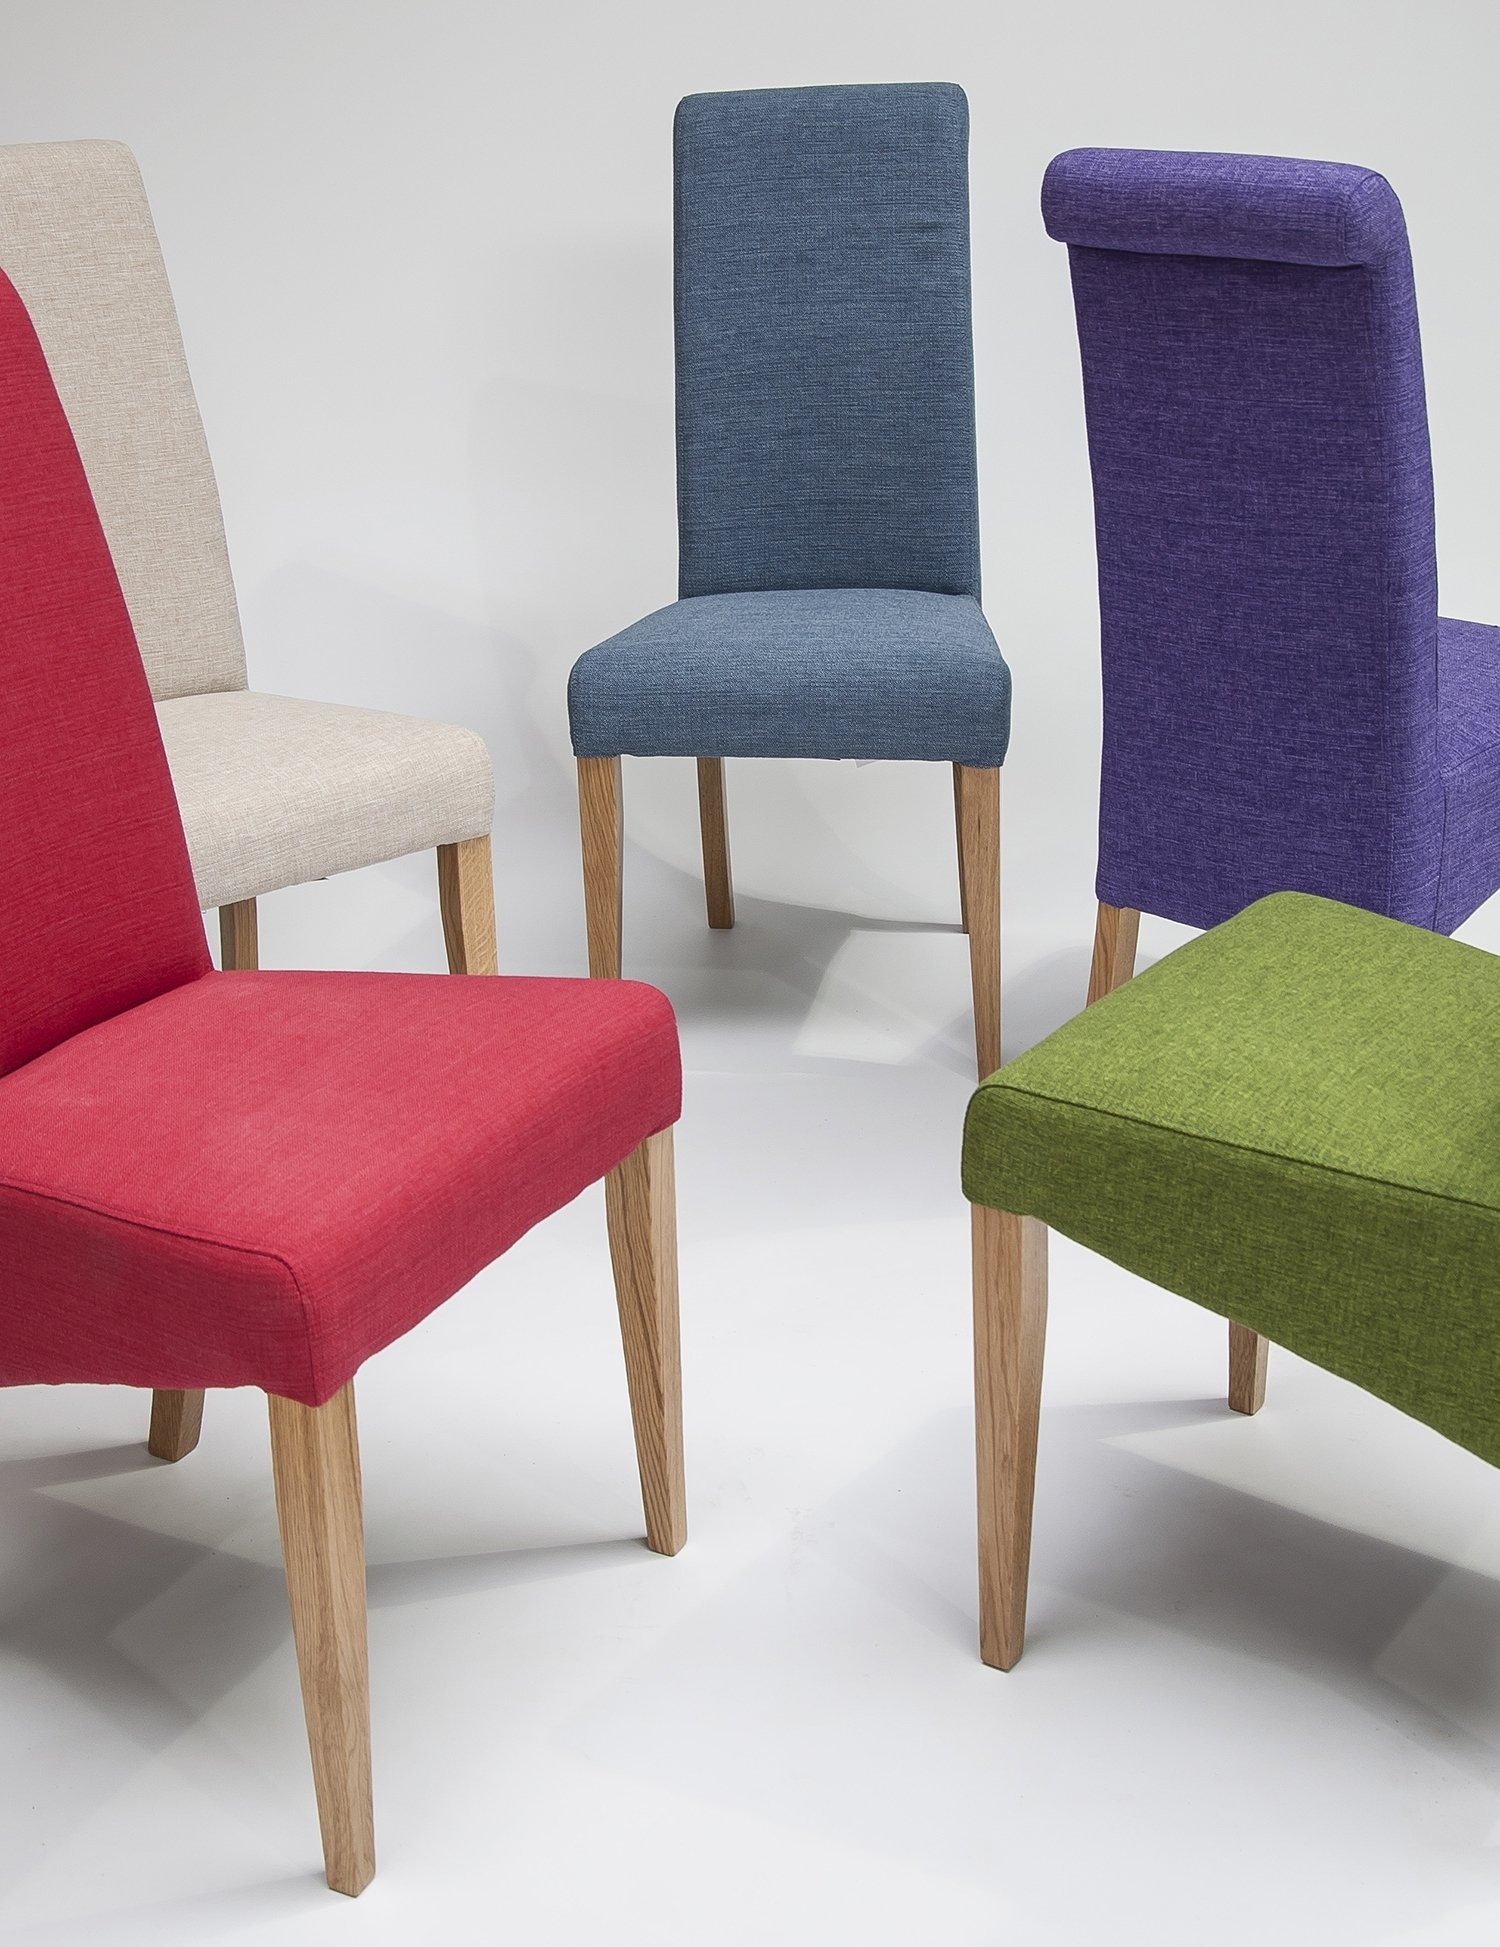 Fabric Dining Chairs Color : Cozy And Stylish Fabric Dining Chairs In Recent Fabric Dining Chairs (View 15 of 25)